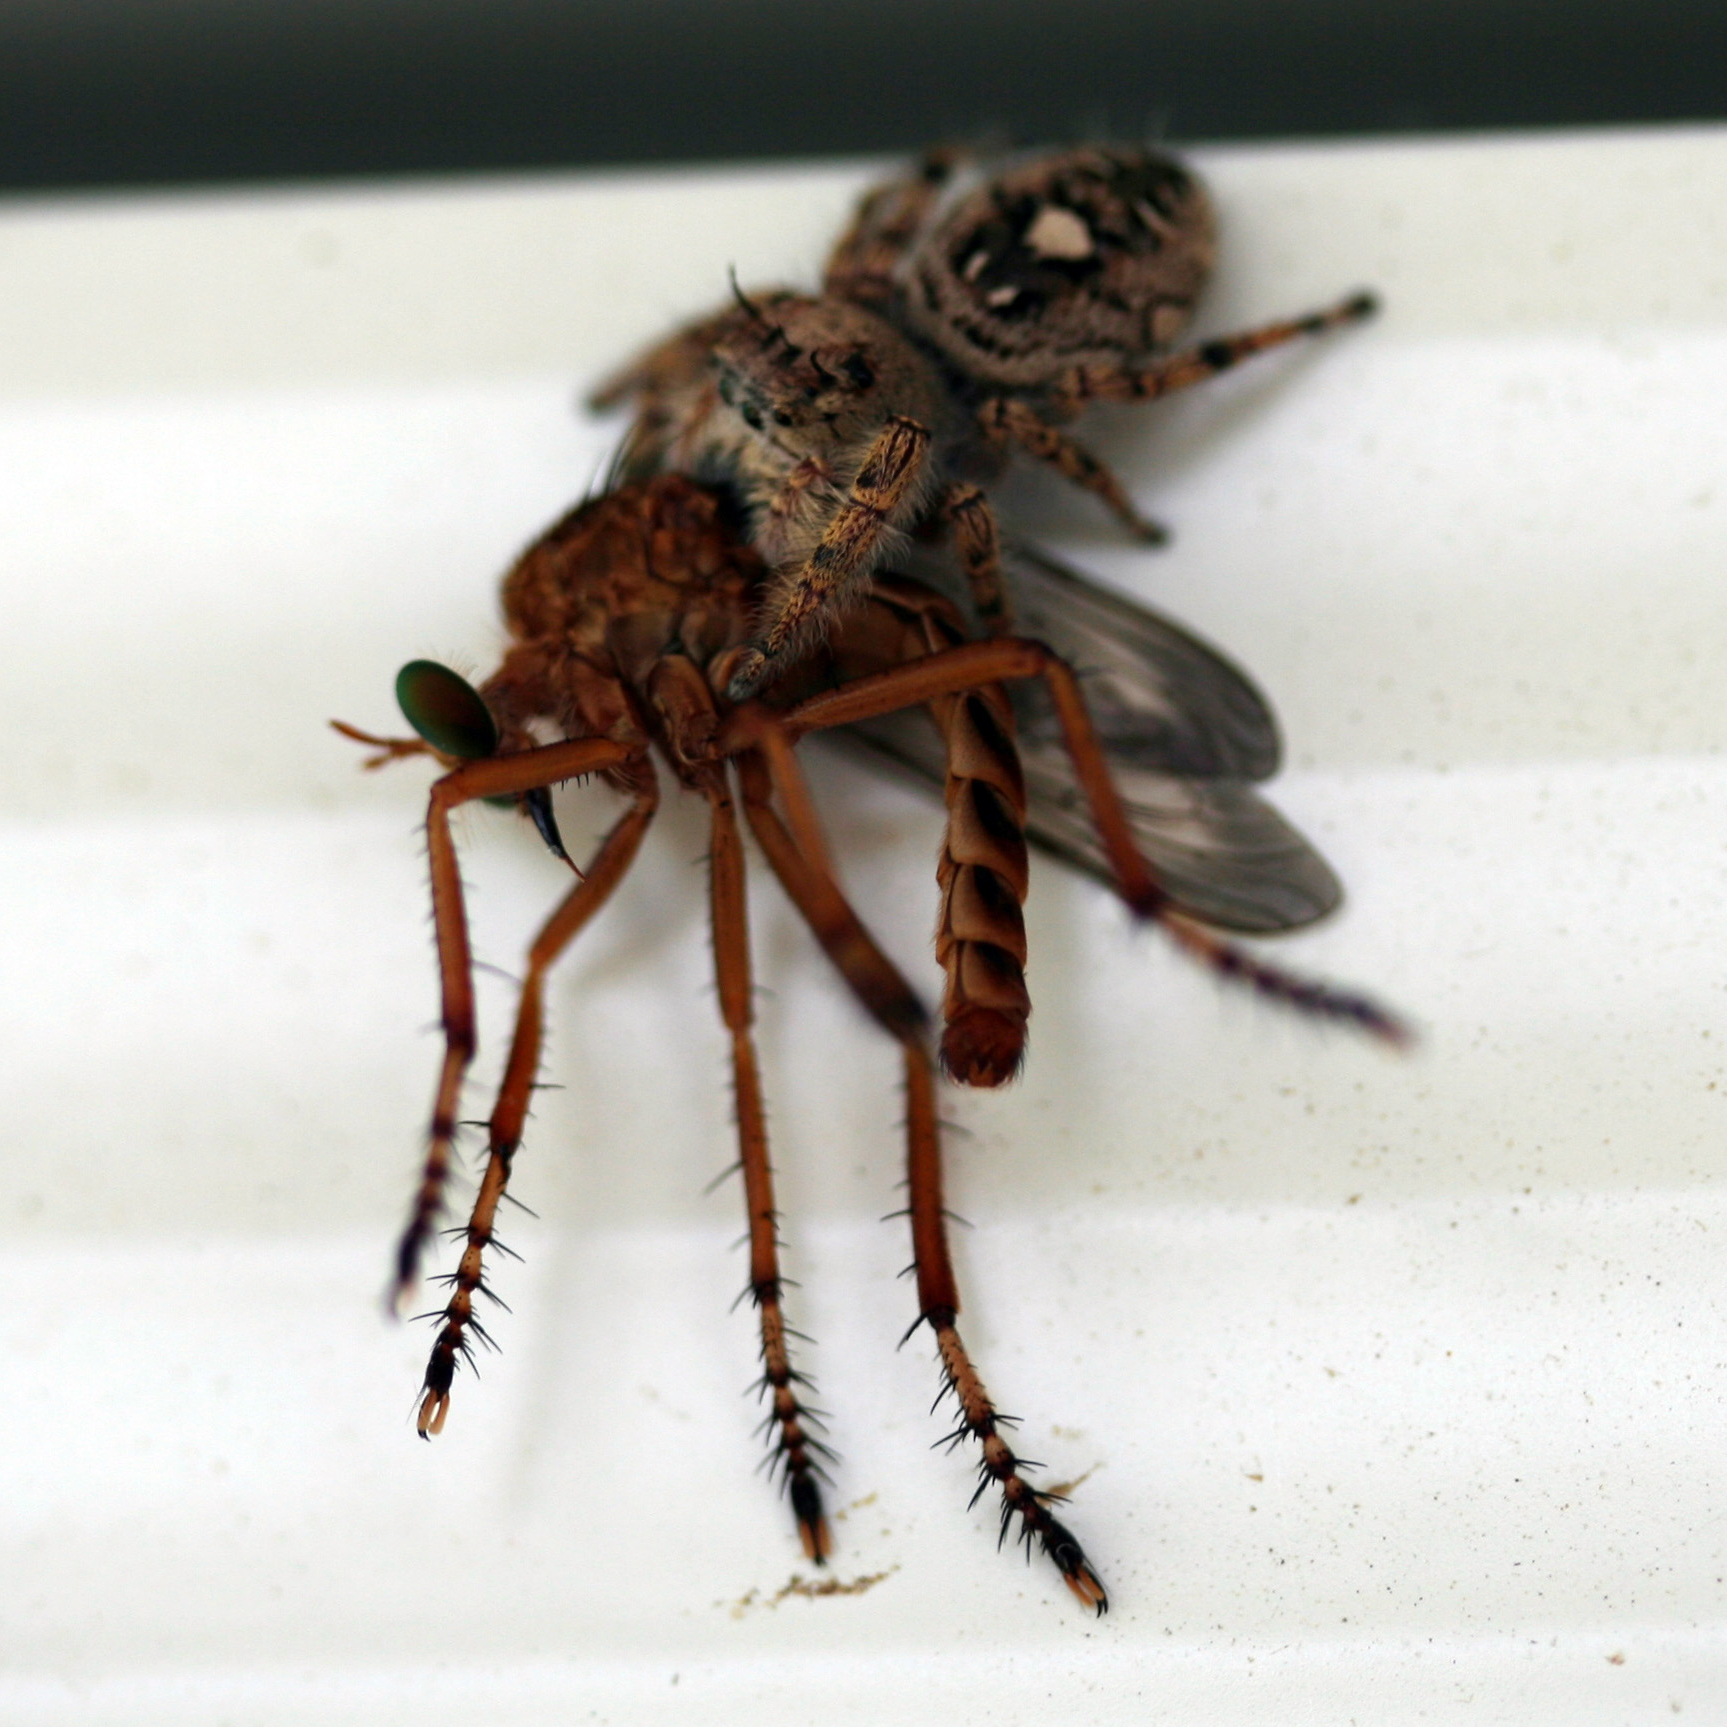 Jumping spider and mosquito